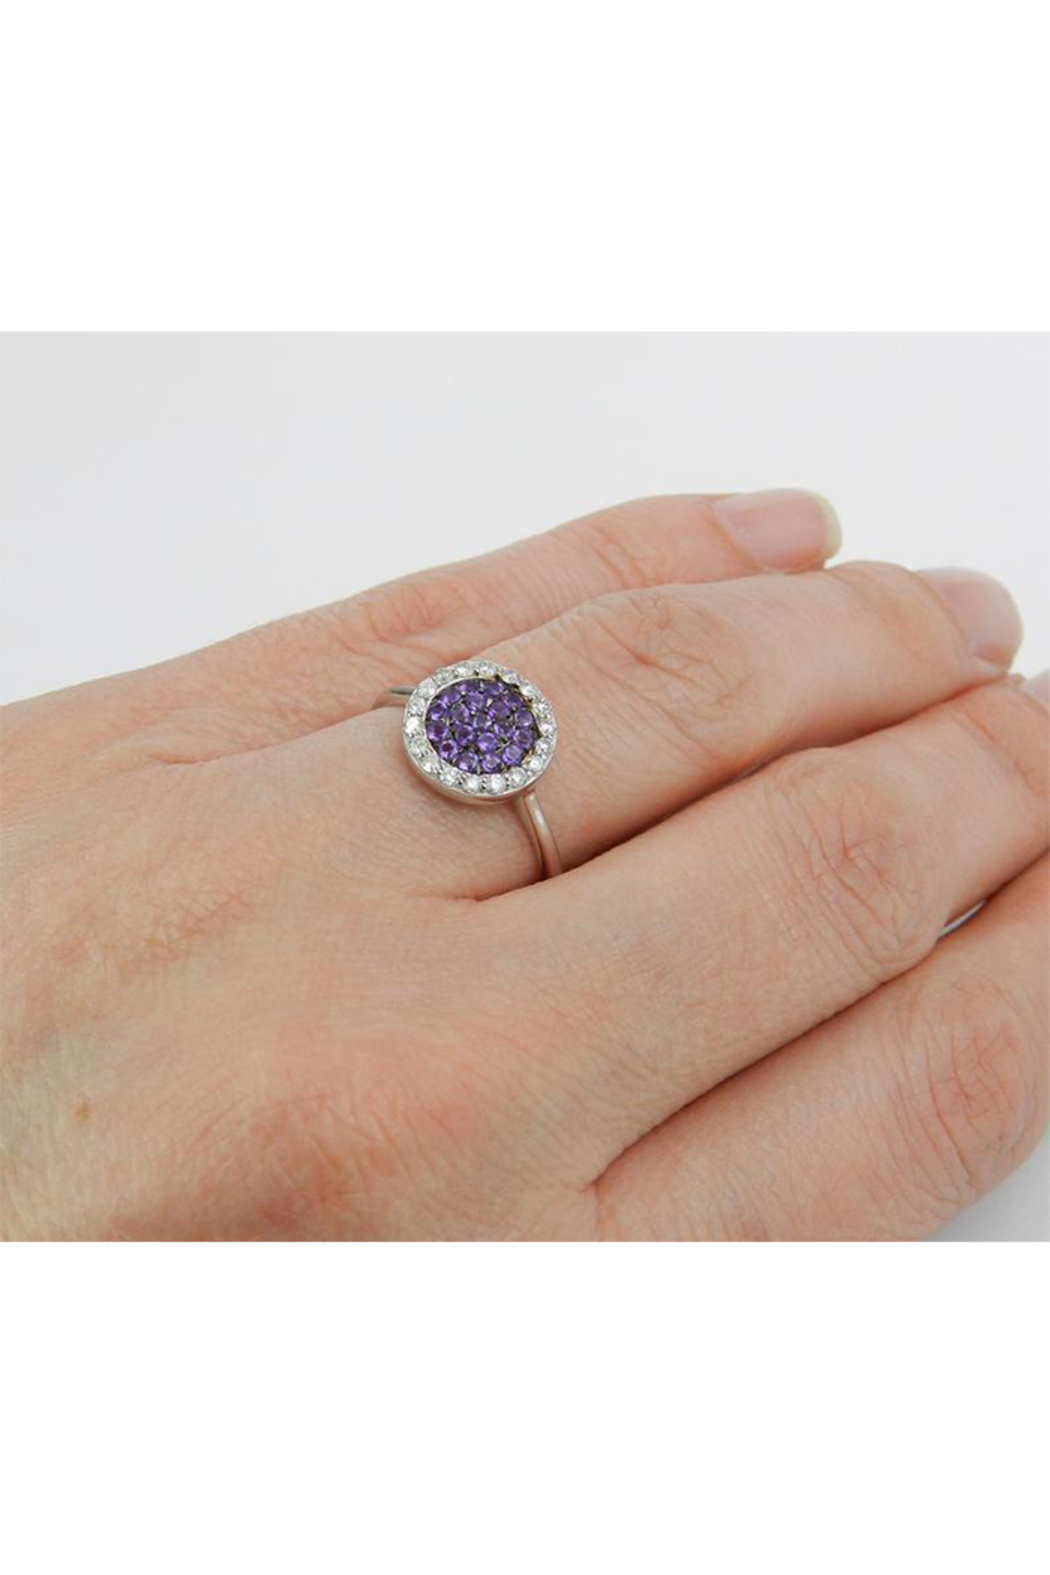 Margolin & Co 14K White Gold Diamond and Amethyst Cluster Promise Cocktail Ring Size 7.25 - Back Cropped Image